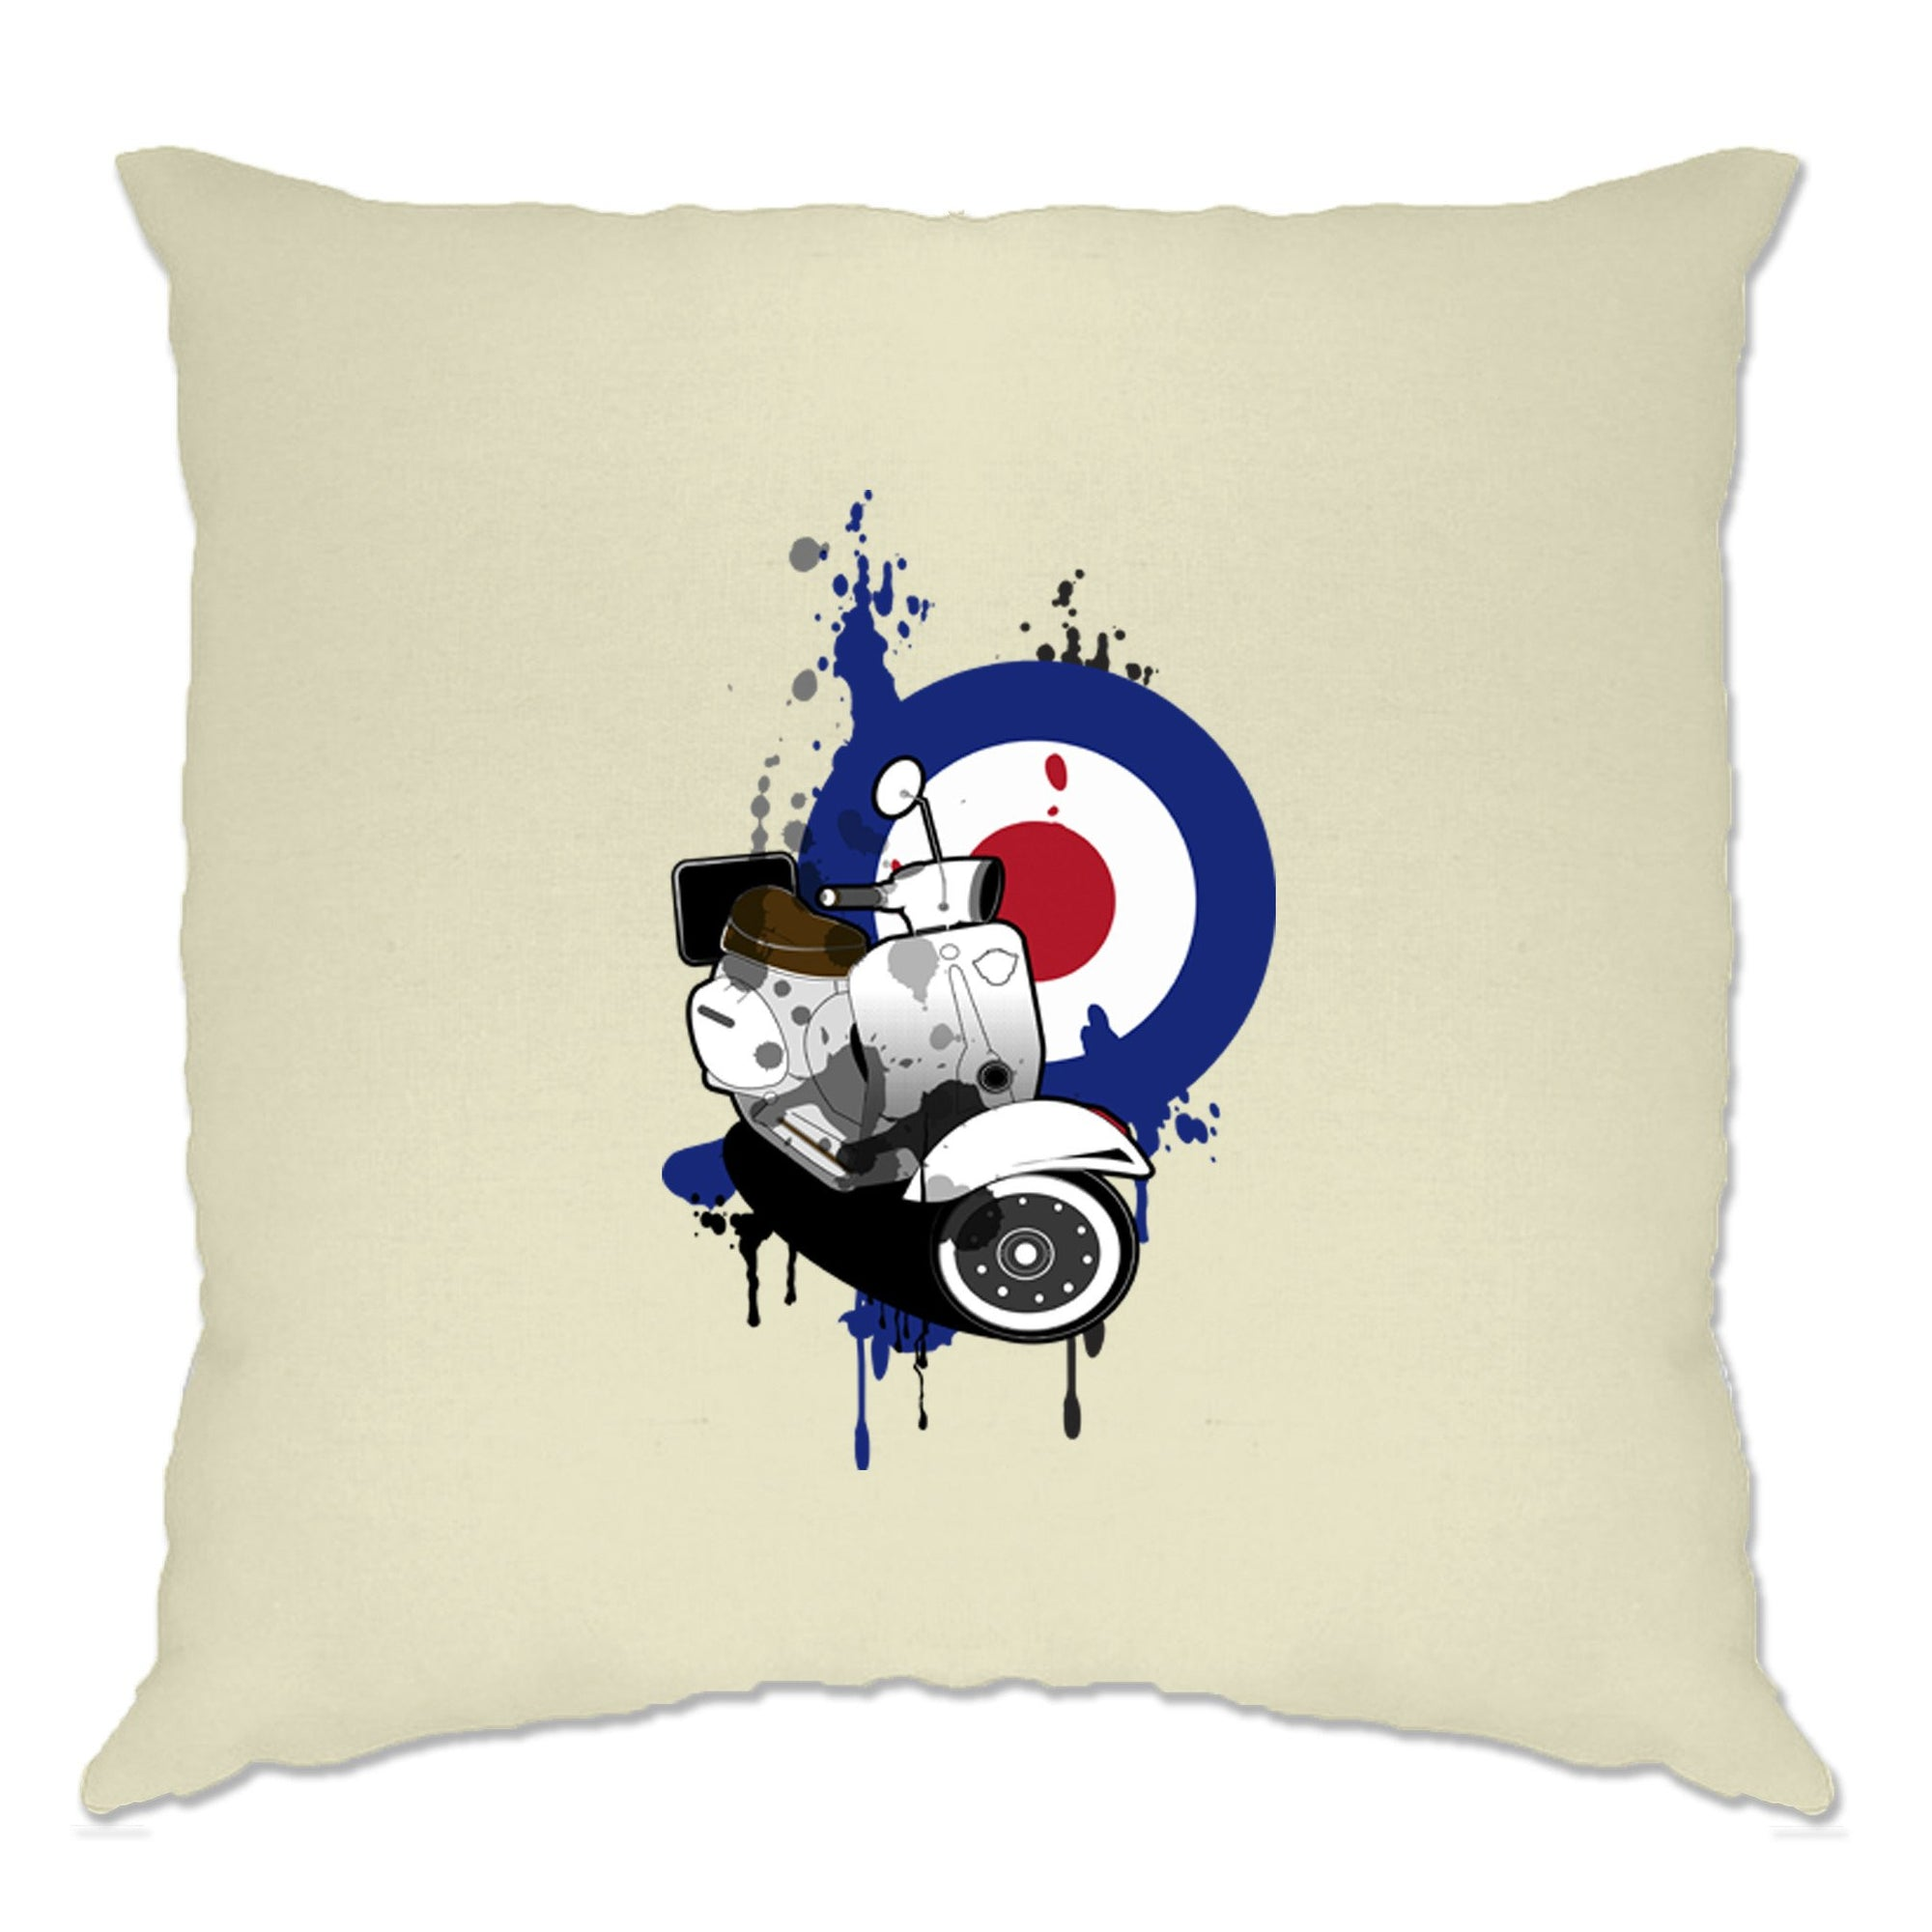 Retro Scooter Cushion Cover Moped Paint Splatter Target